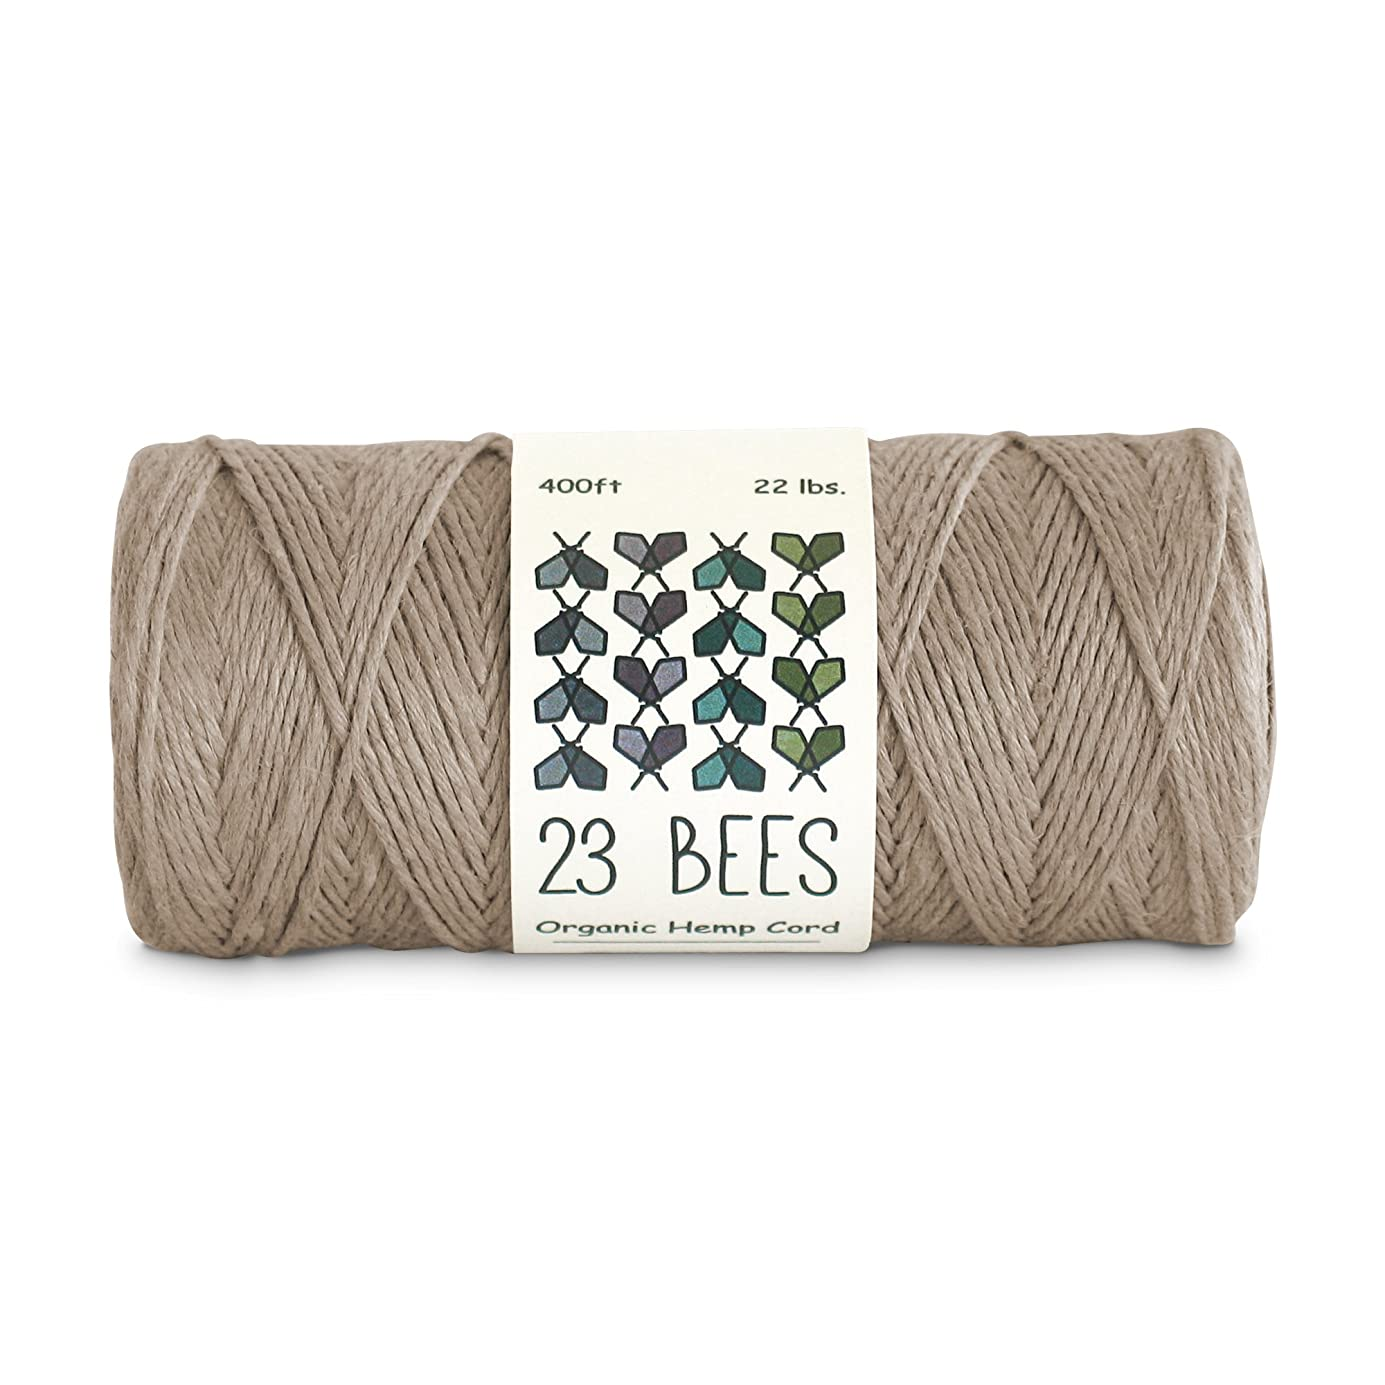 100% Organic Hemp String, Twine, Cord | Jewelry Making, Beading, Macrame, Crafts | 23 Bees (400ft x 22 lb.) owcvde1332